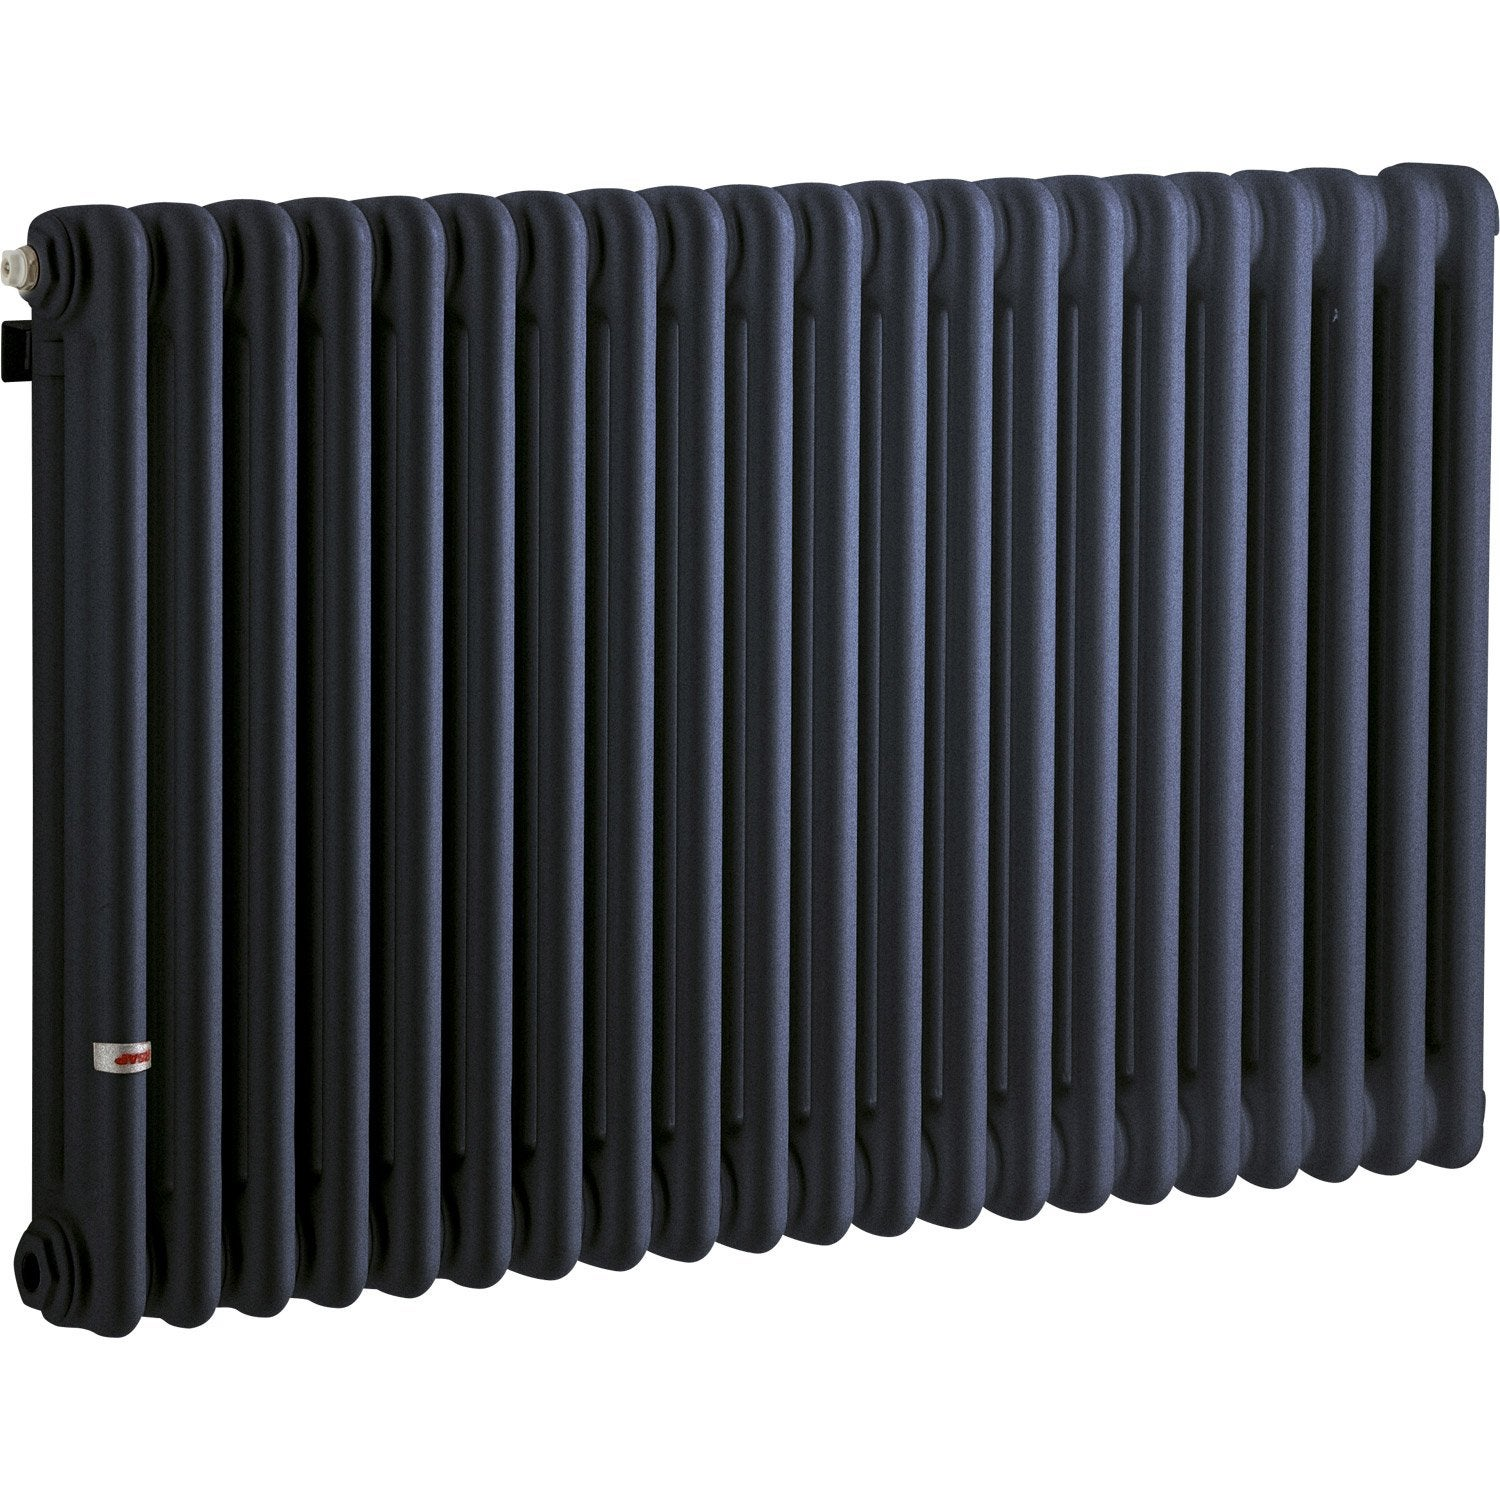 radiateur plinthe chauffage central radiateur vuelta plinthe chauffage central mcp acova. Black Bedroom Furniture Sets. Home Design Ideas